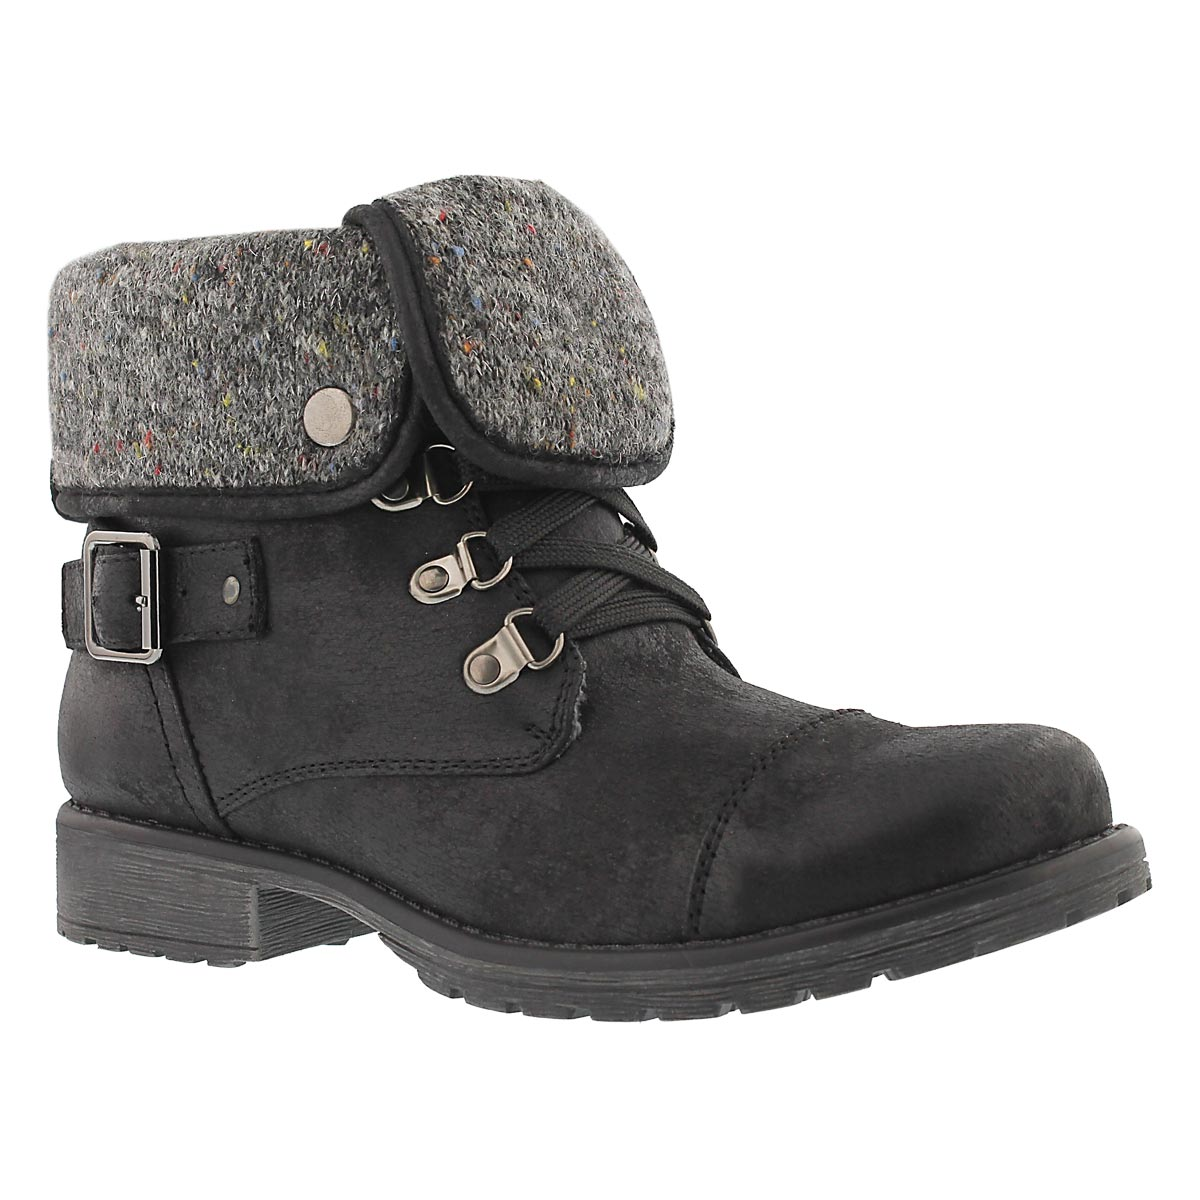 Women's AVERY 2 black lace up casual boots